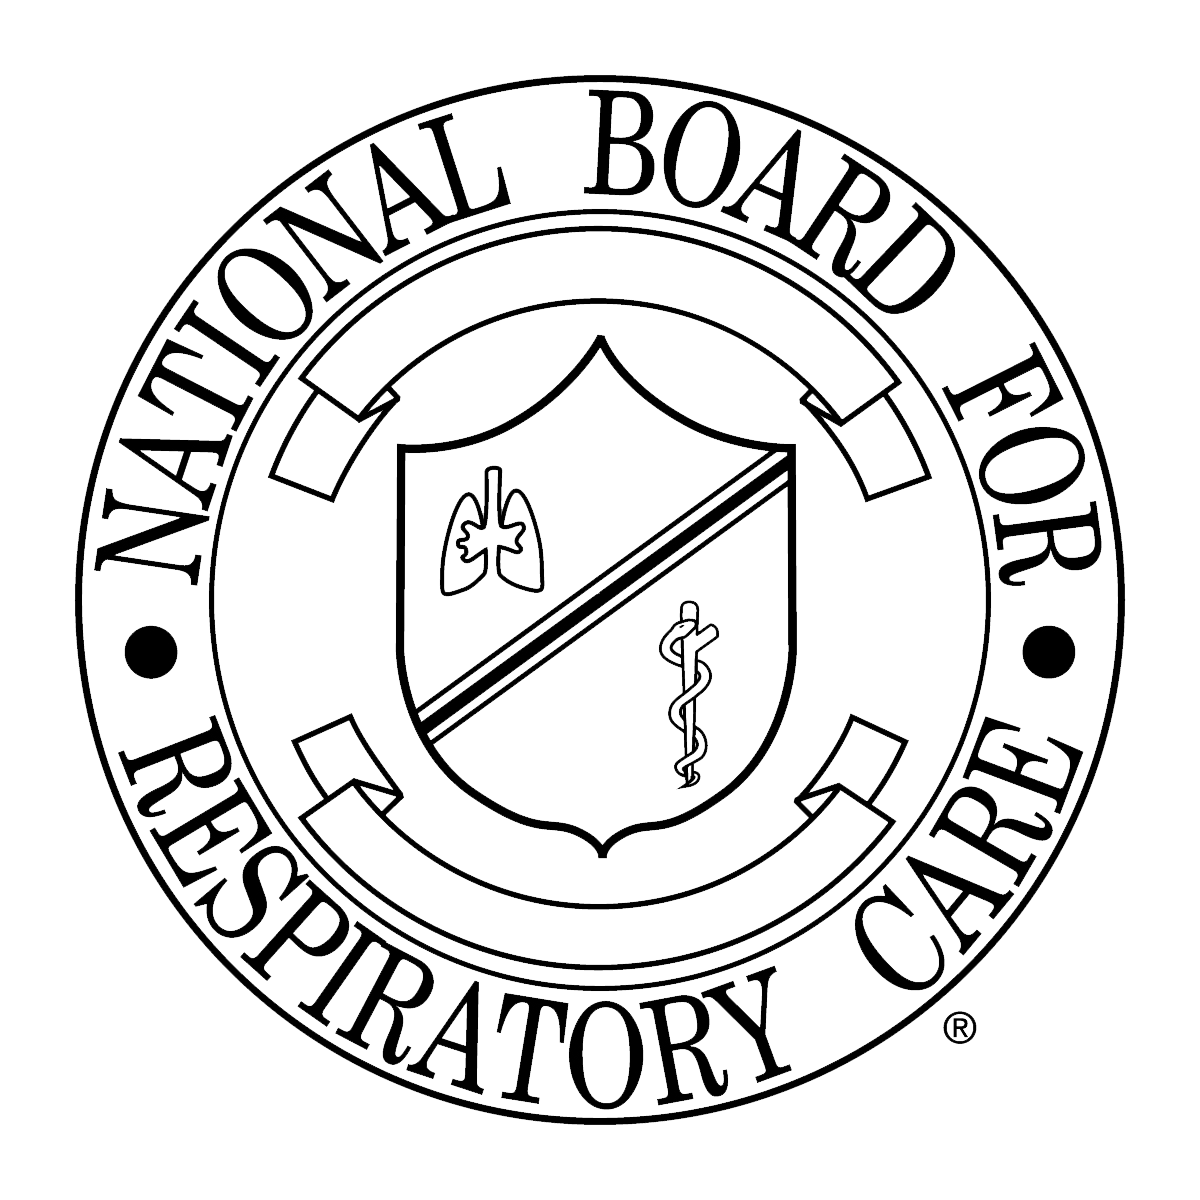 Registered Respiratory Therapist (RRT) - The National Board for